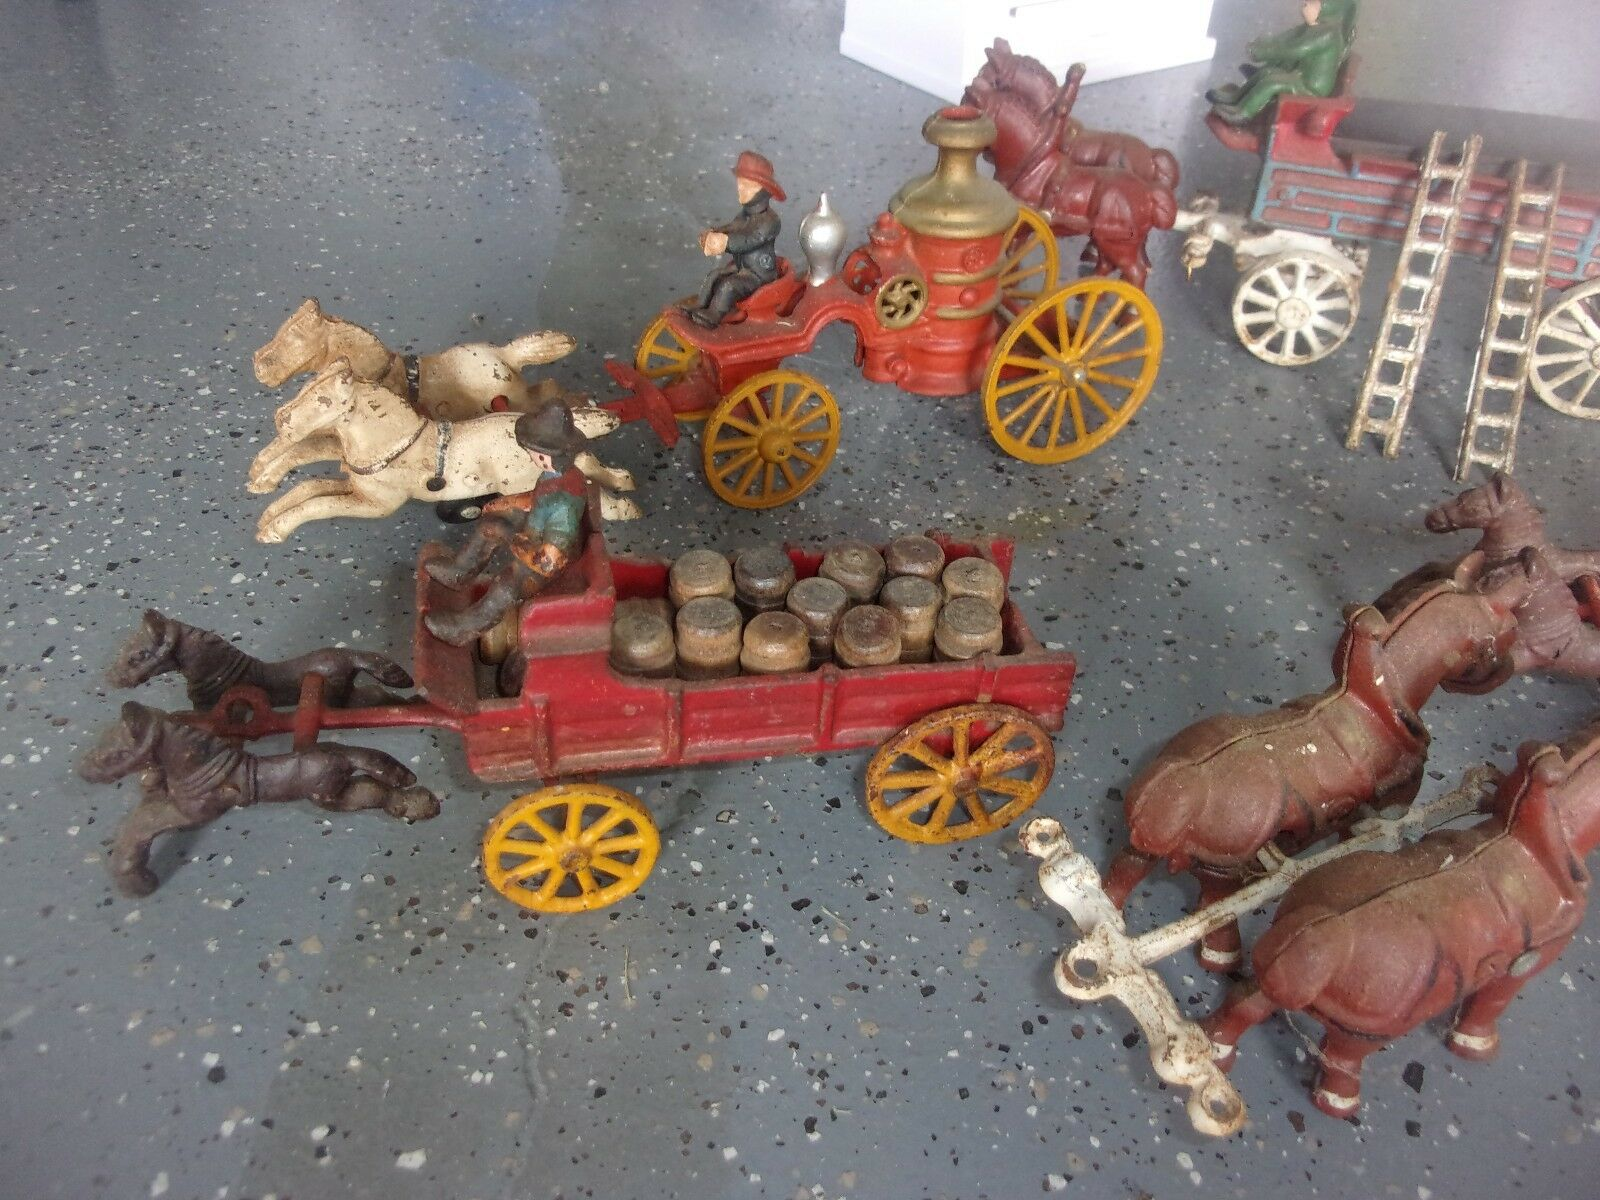 VINTAGE CAST IRON LOT OF FIGURES, WAGONS, HORSES, BARRELS